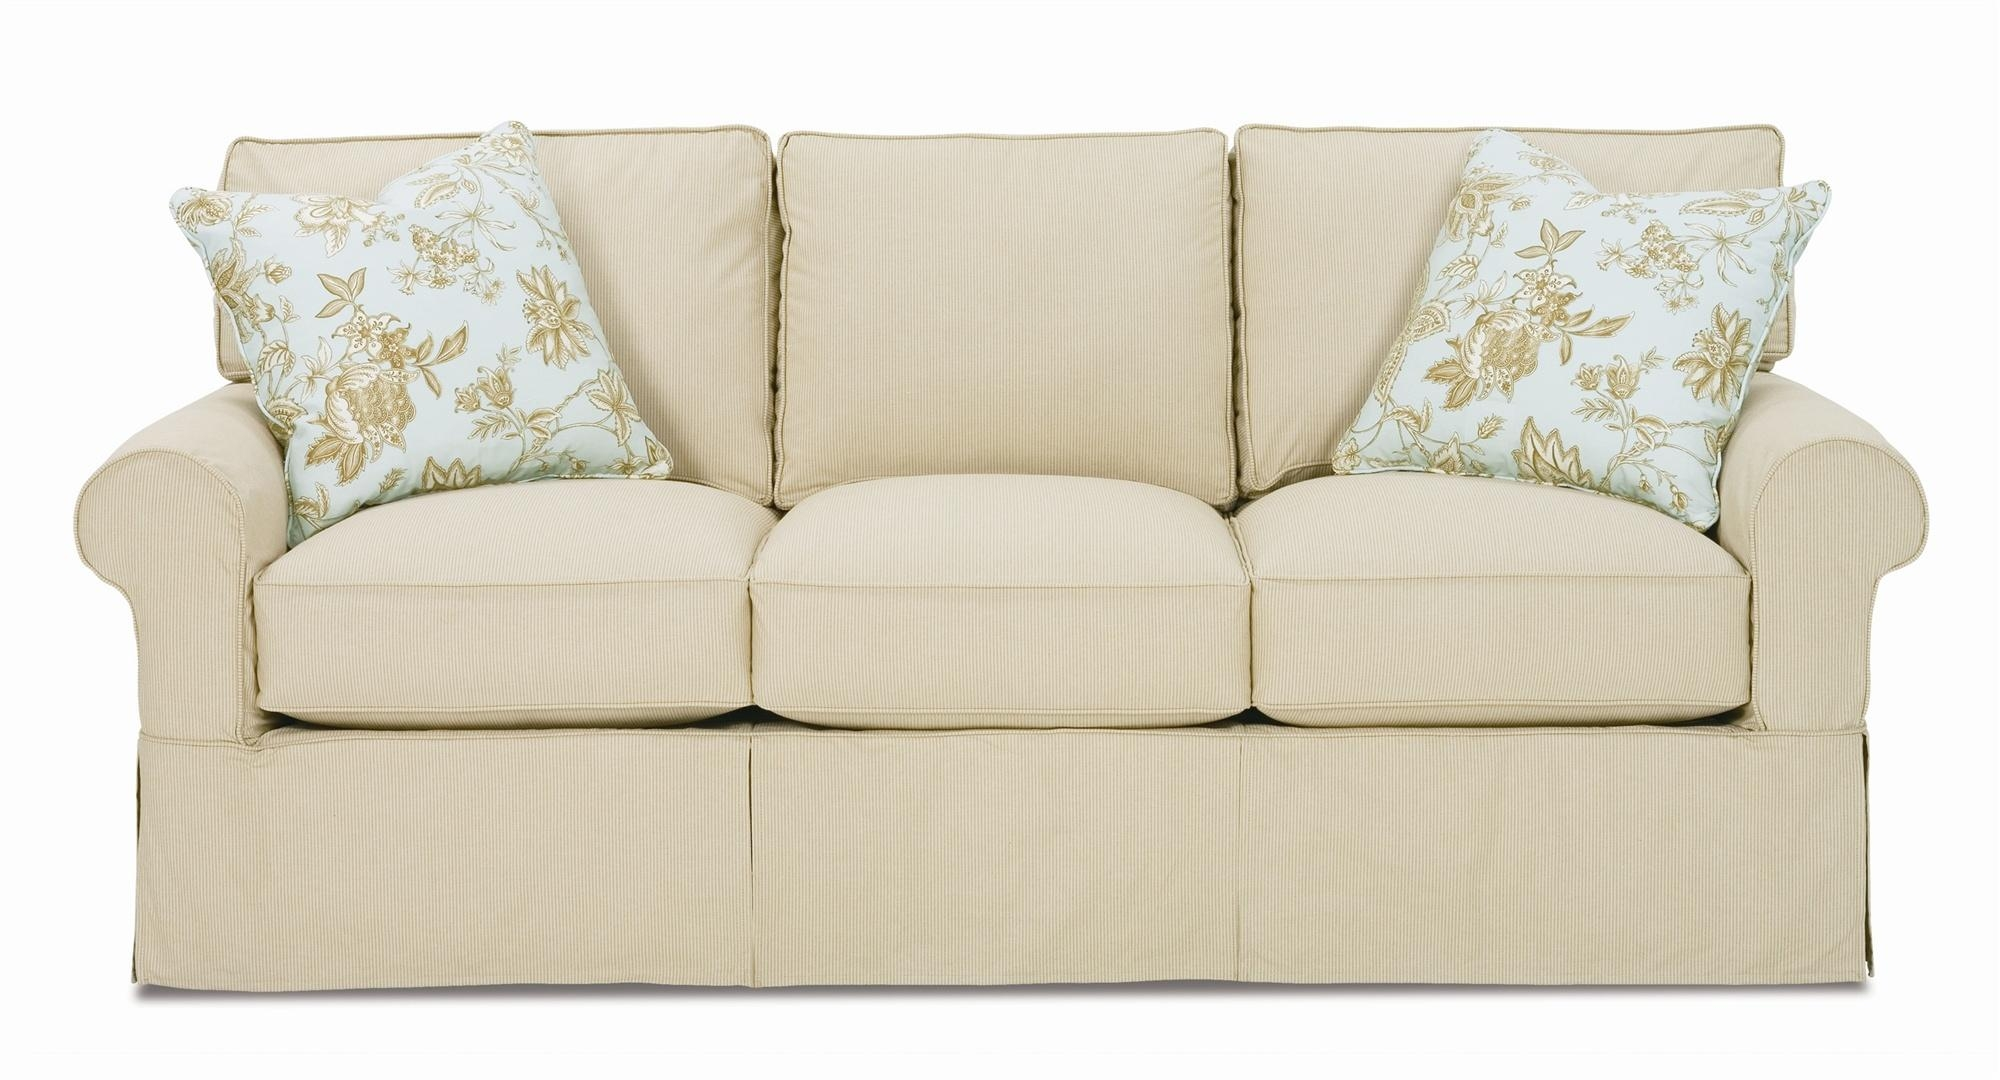 Furniture: 2 Piece Sofa Slipcover | Shabby Chic Sofa Slipcovers Regarding Shabby Chic Sofa Slipcovers (Image 15 of 20)